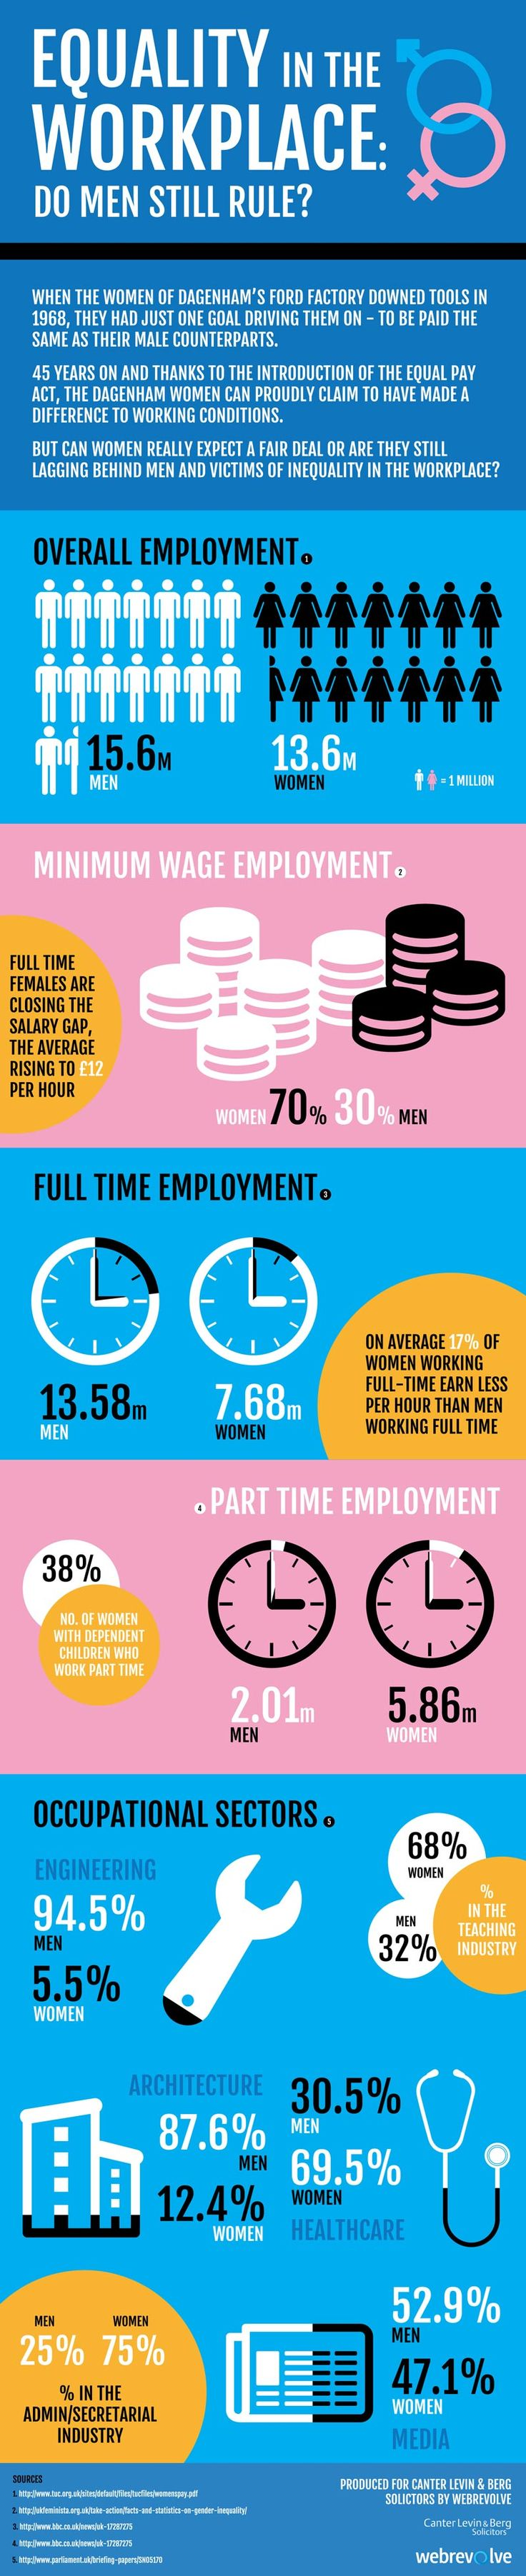 Gender Equality at Work : After years of riots, protests, strikes and fights against phallocratic stereotypes and establishments, have women finally managed to combat inequality at work? Canter law firm presents the today reality illustrated. When the women of Dagenham's Ford Factory downed tools in 1968, they had... > http://infographicsmania.com/gender-equality-at-work/?utm_source=Pinterest&utm_medium=ZAKKAS&utm_campaign=SNAP